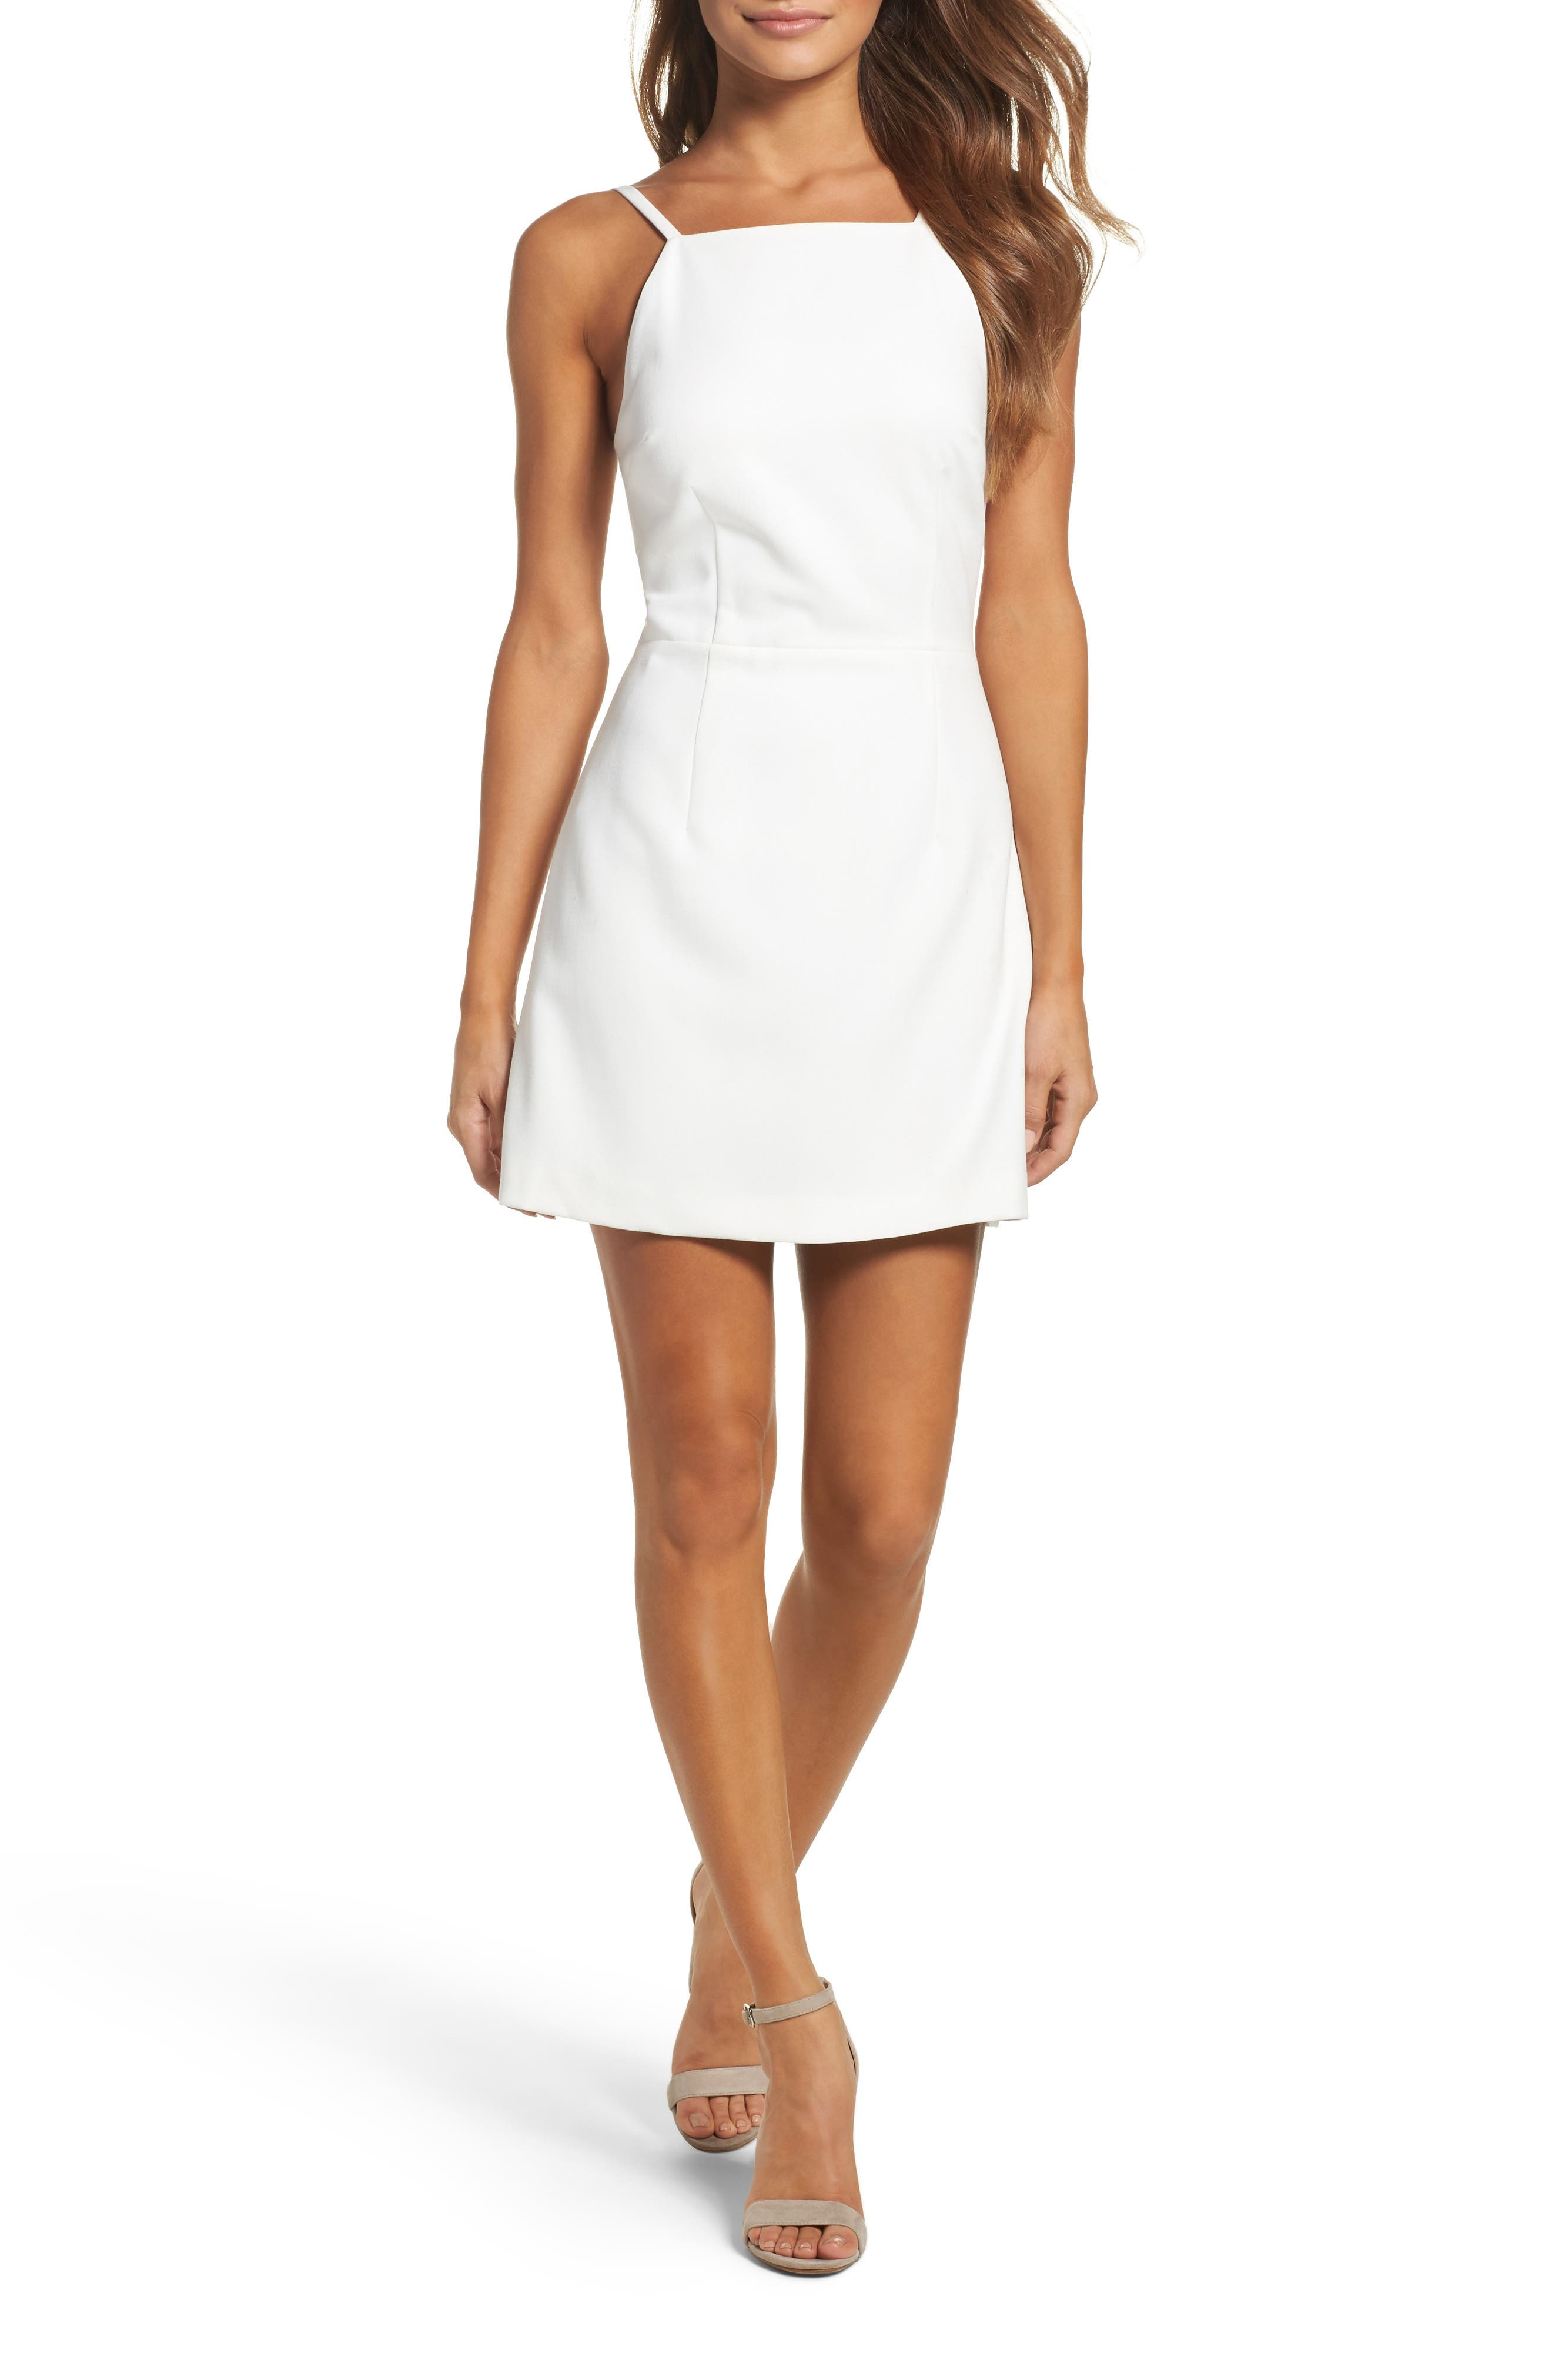 2019 year look- Dresses white for women cocktail